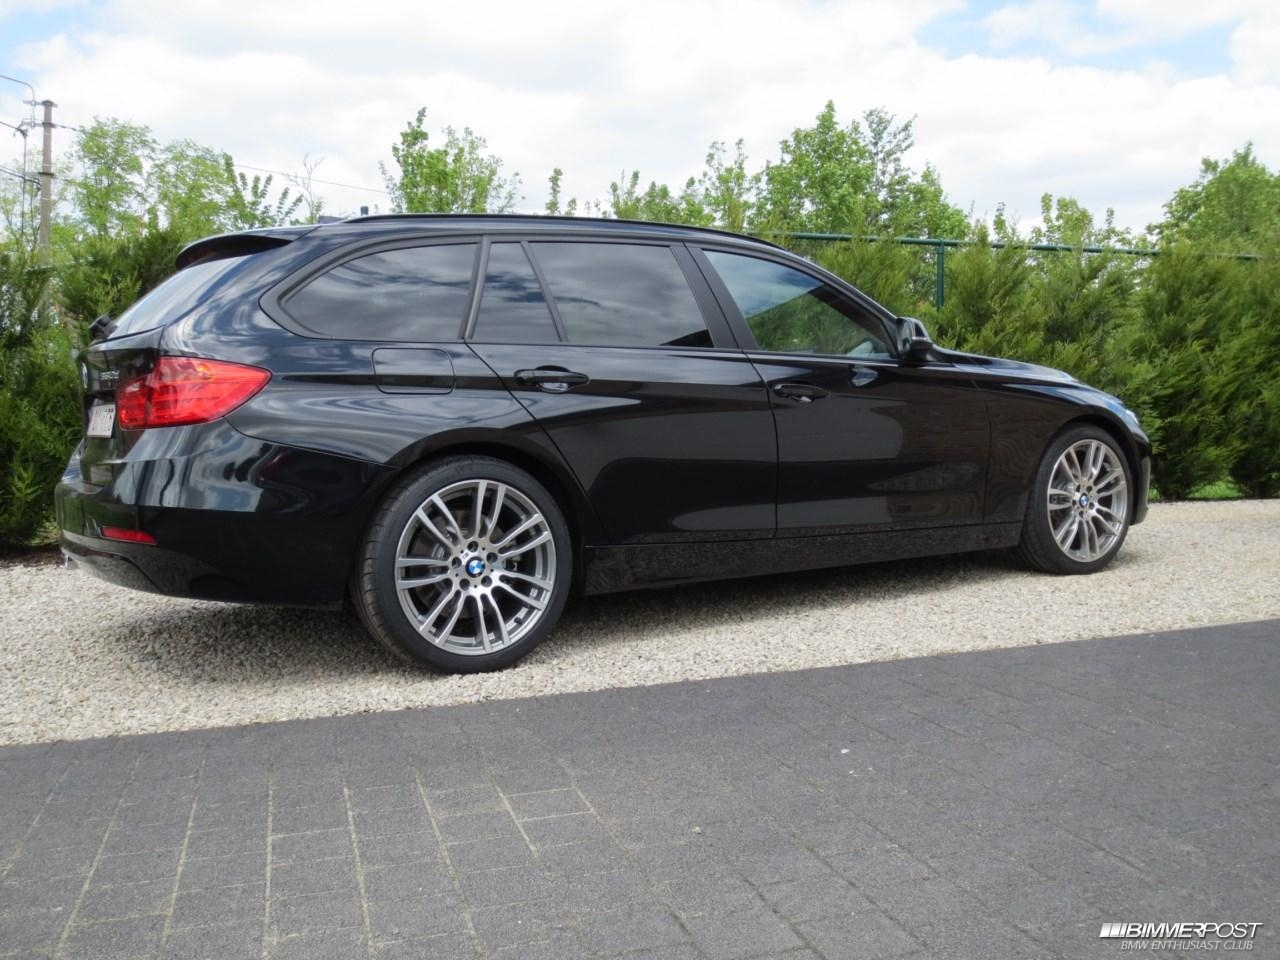 Moneyfor S 2013 Bmw F31 330d Bimmerpost Garage